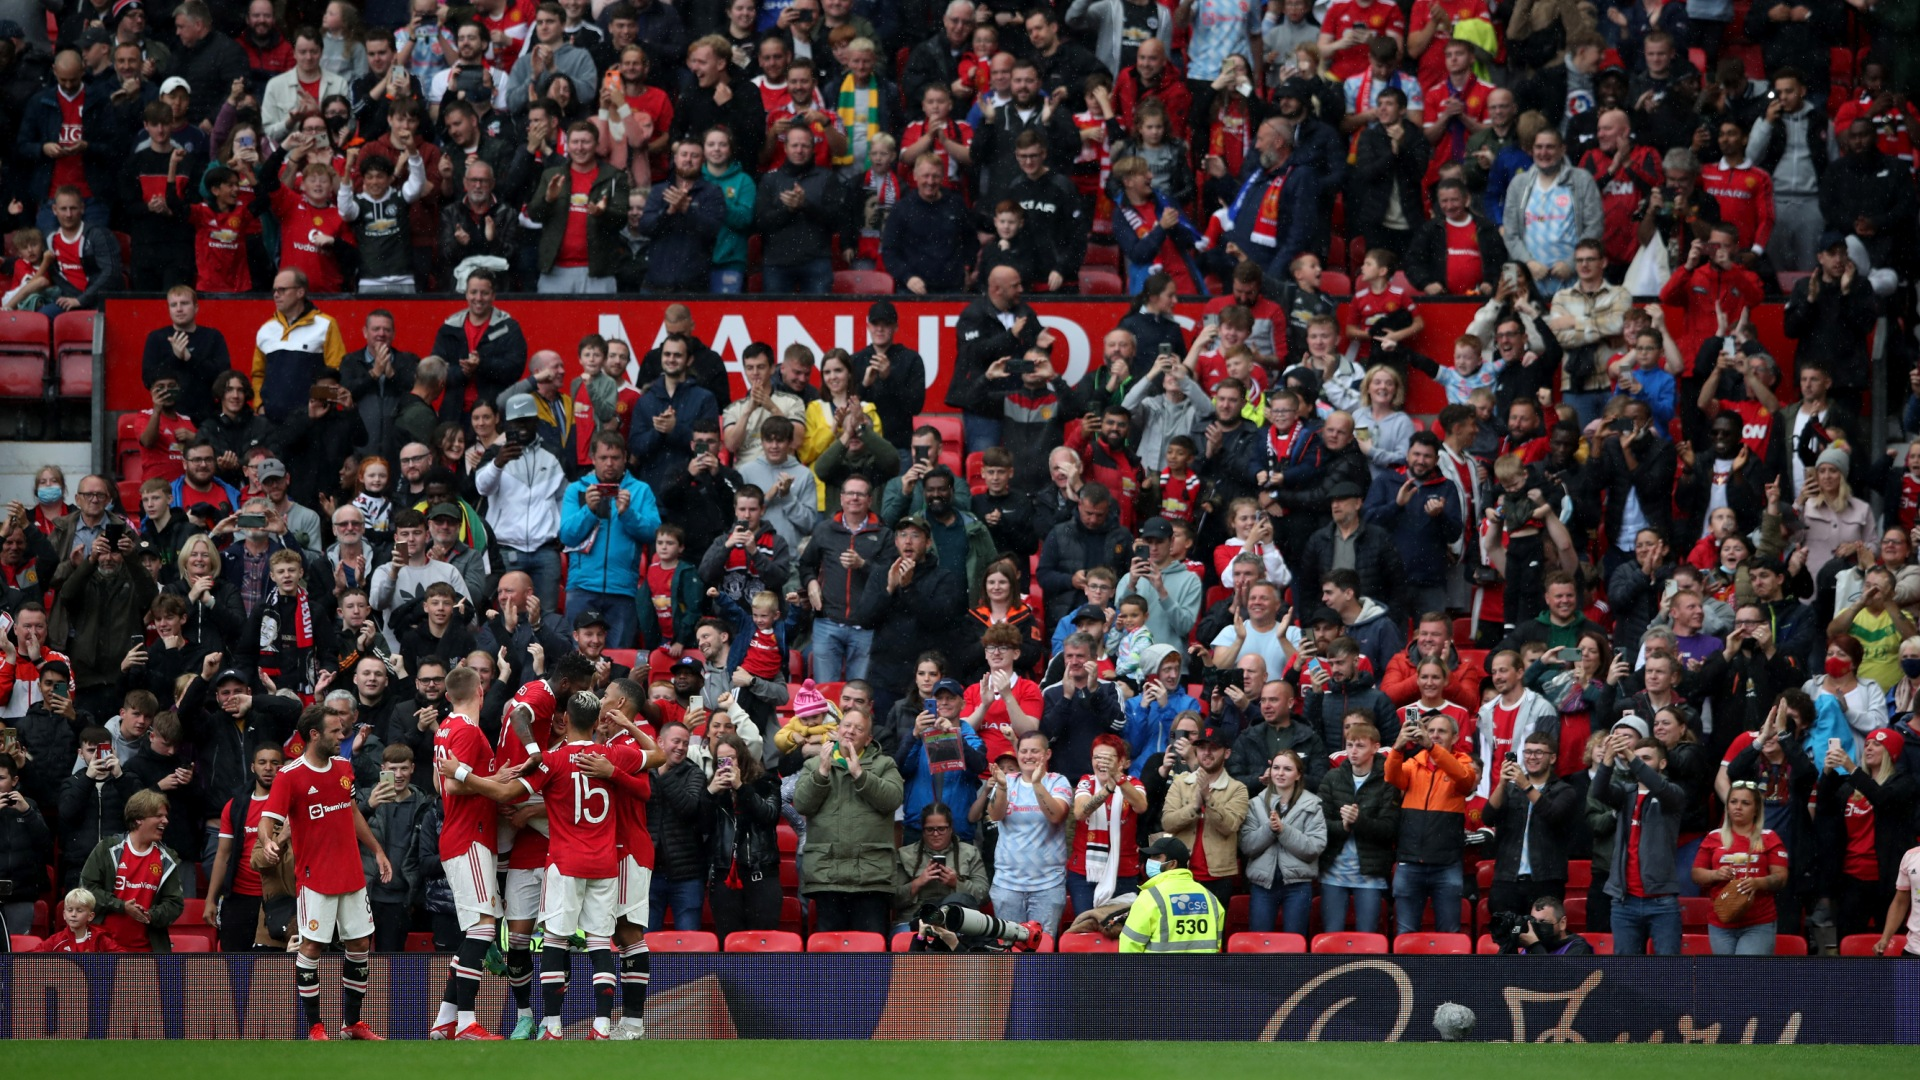 Watch Southampton v Manchester United with LIVENow